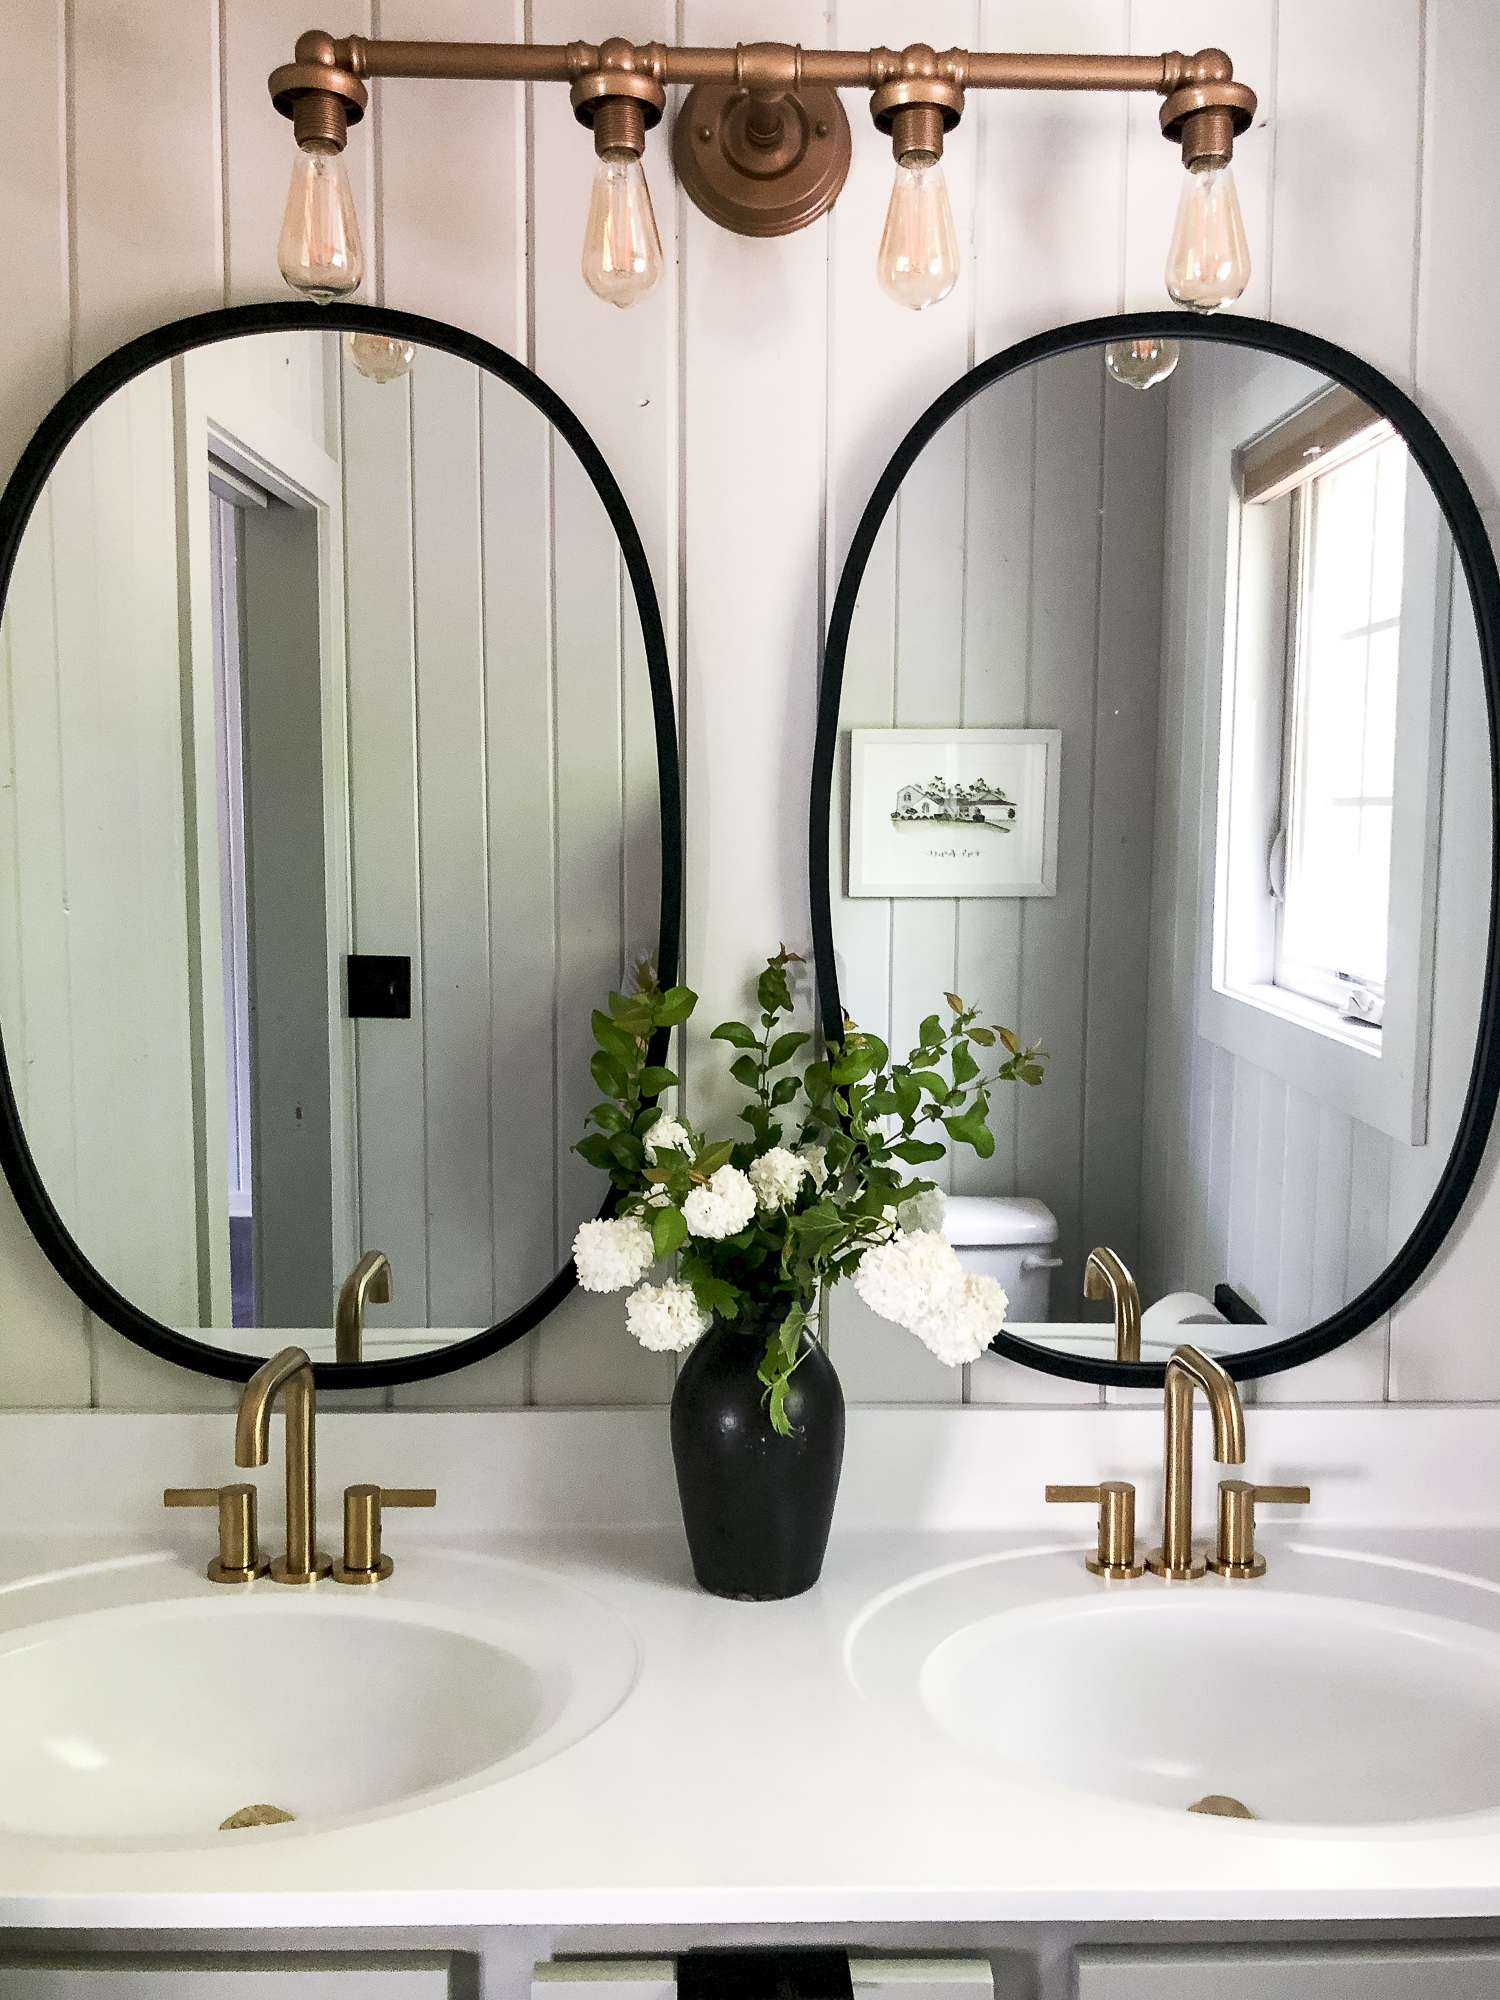 Double mirrors over a budget friendly vanity.